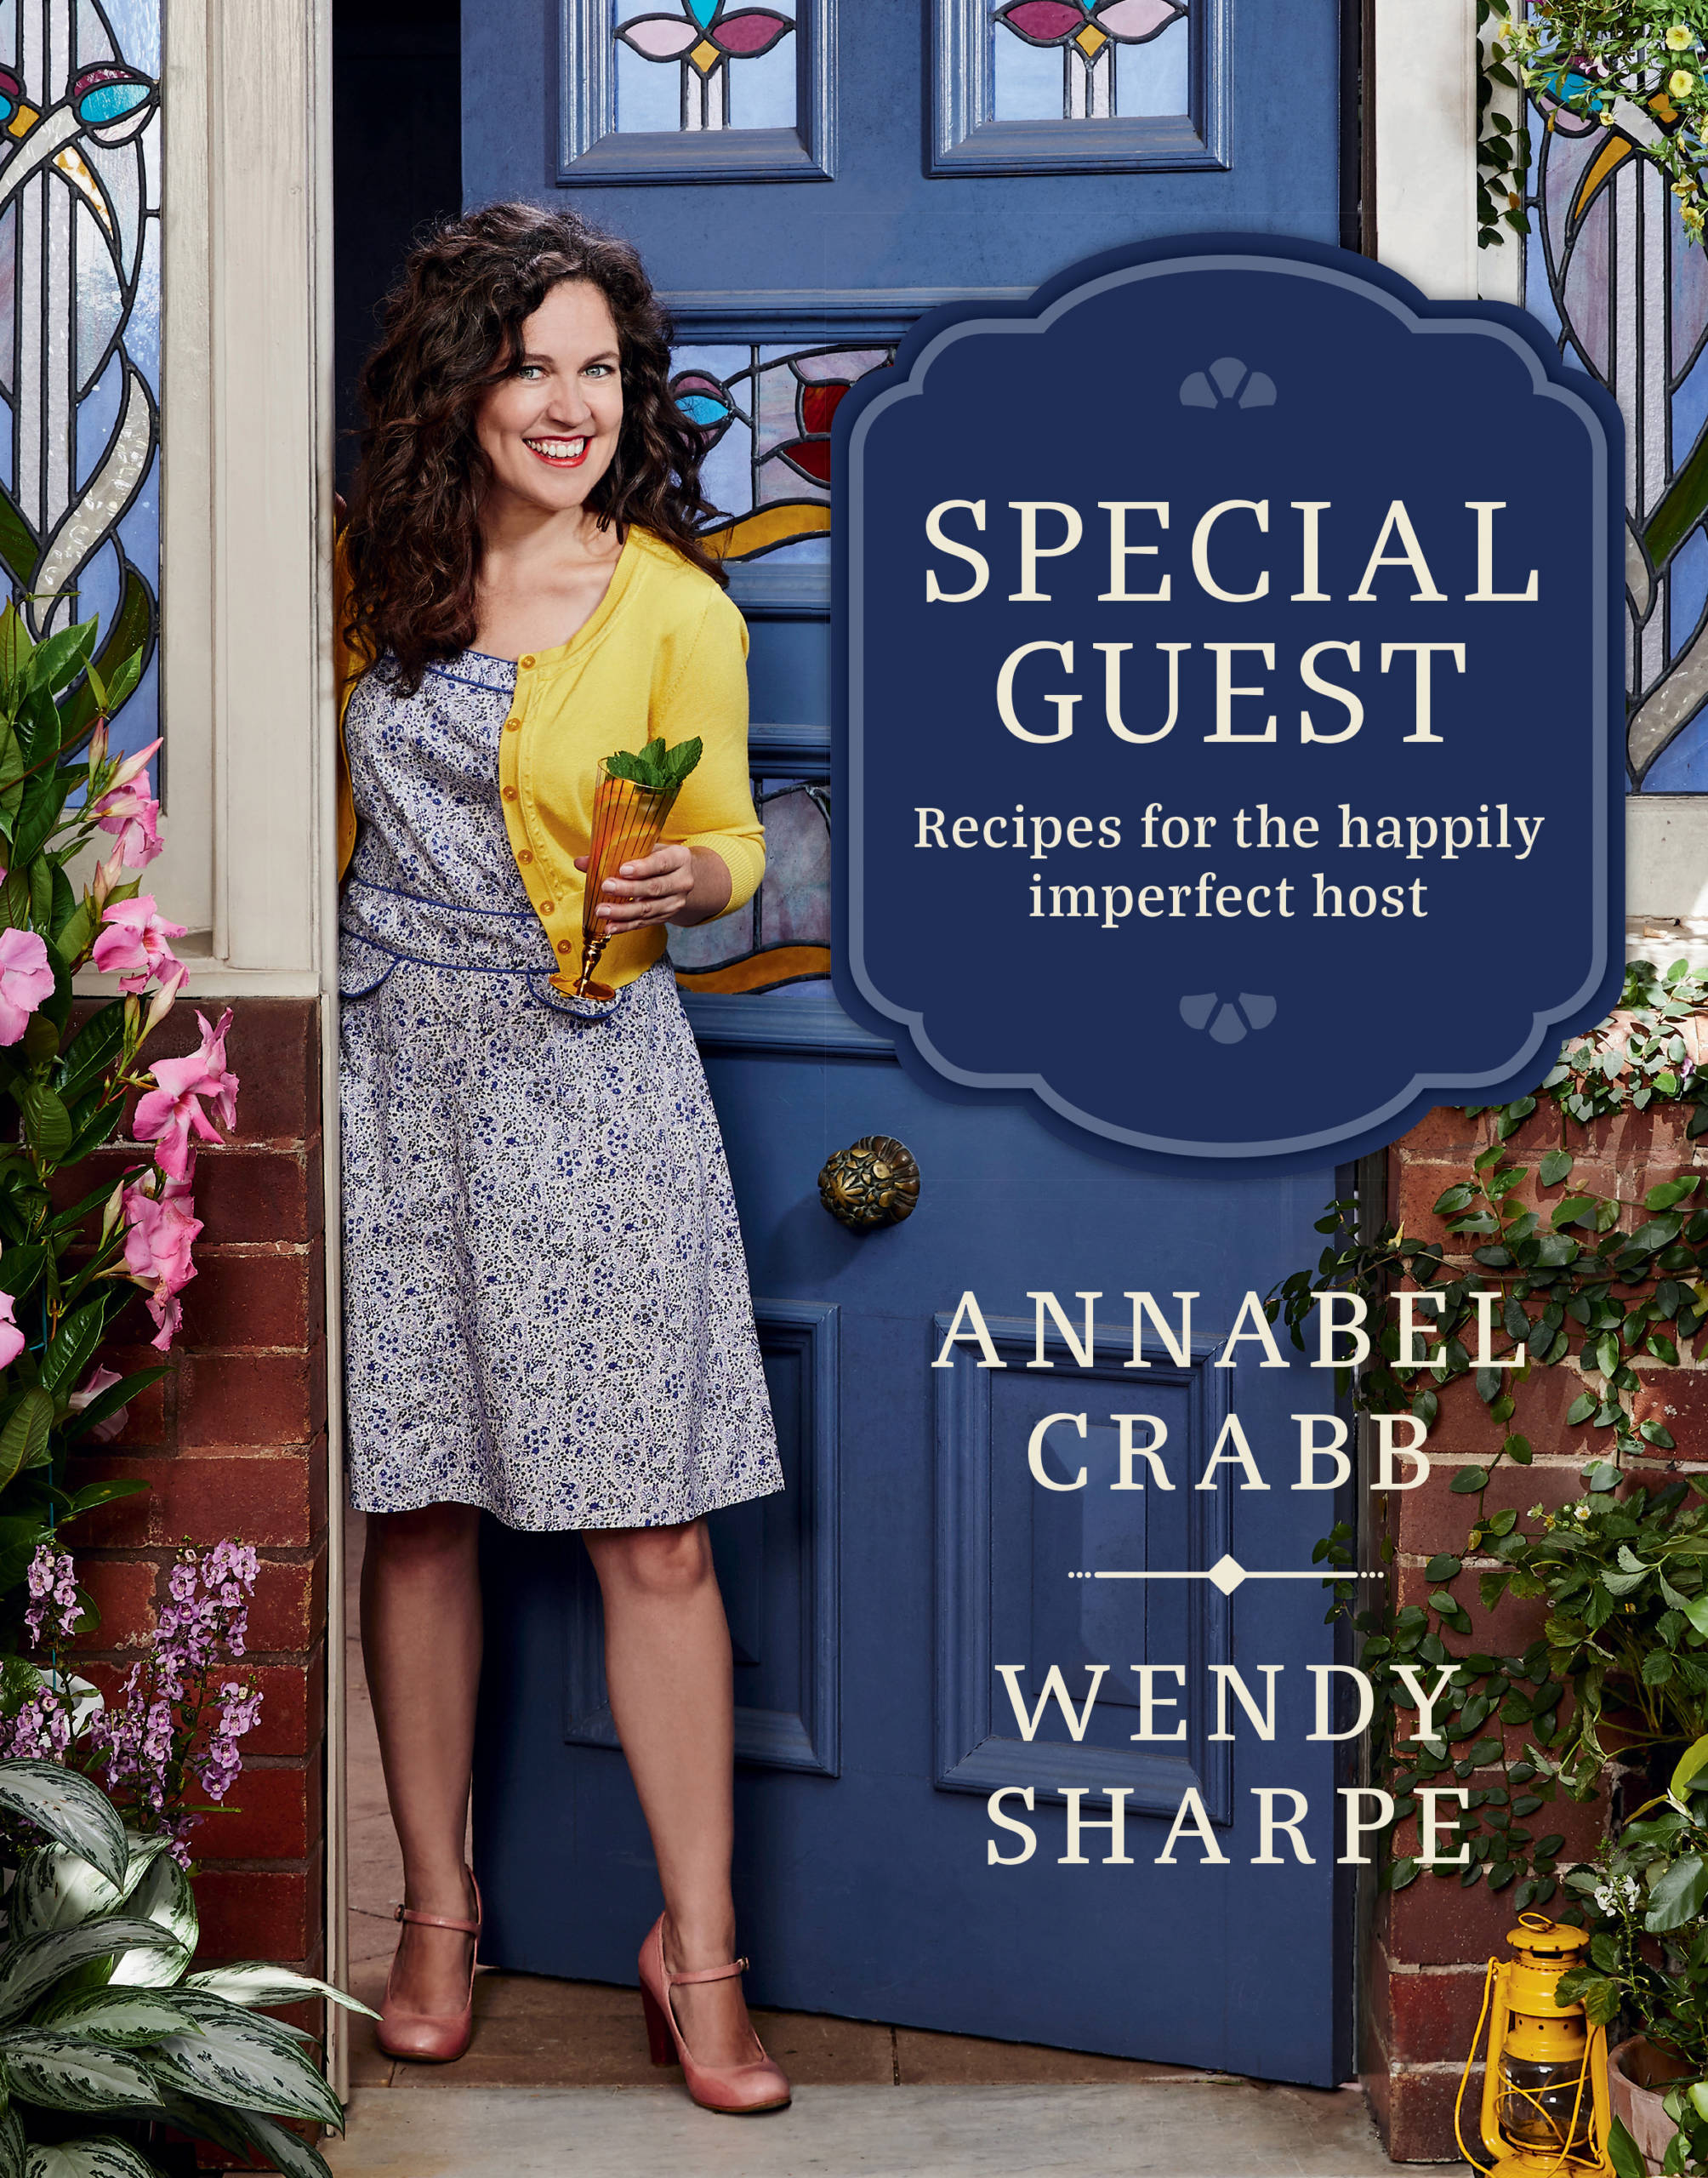 Special Guest by Annabel Crabb, Wendy Sharpe, ISBN: 9781760631949